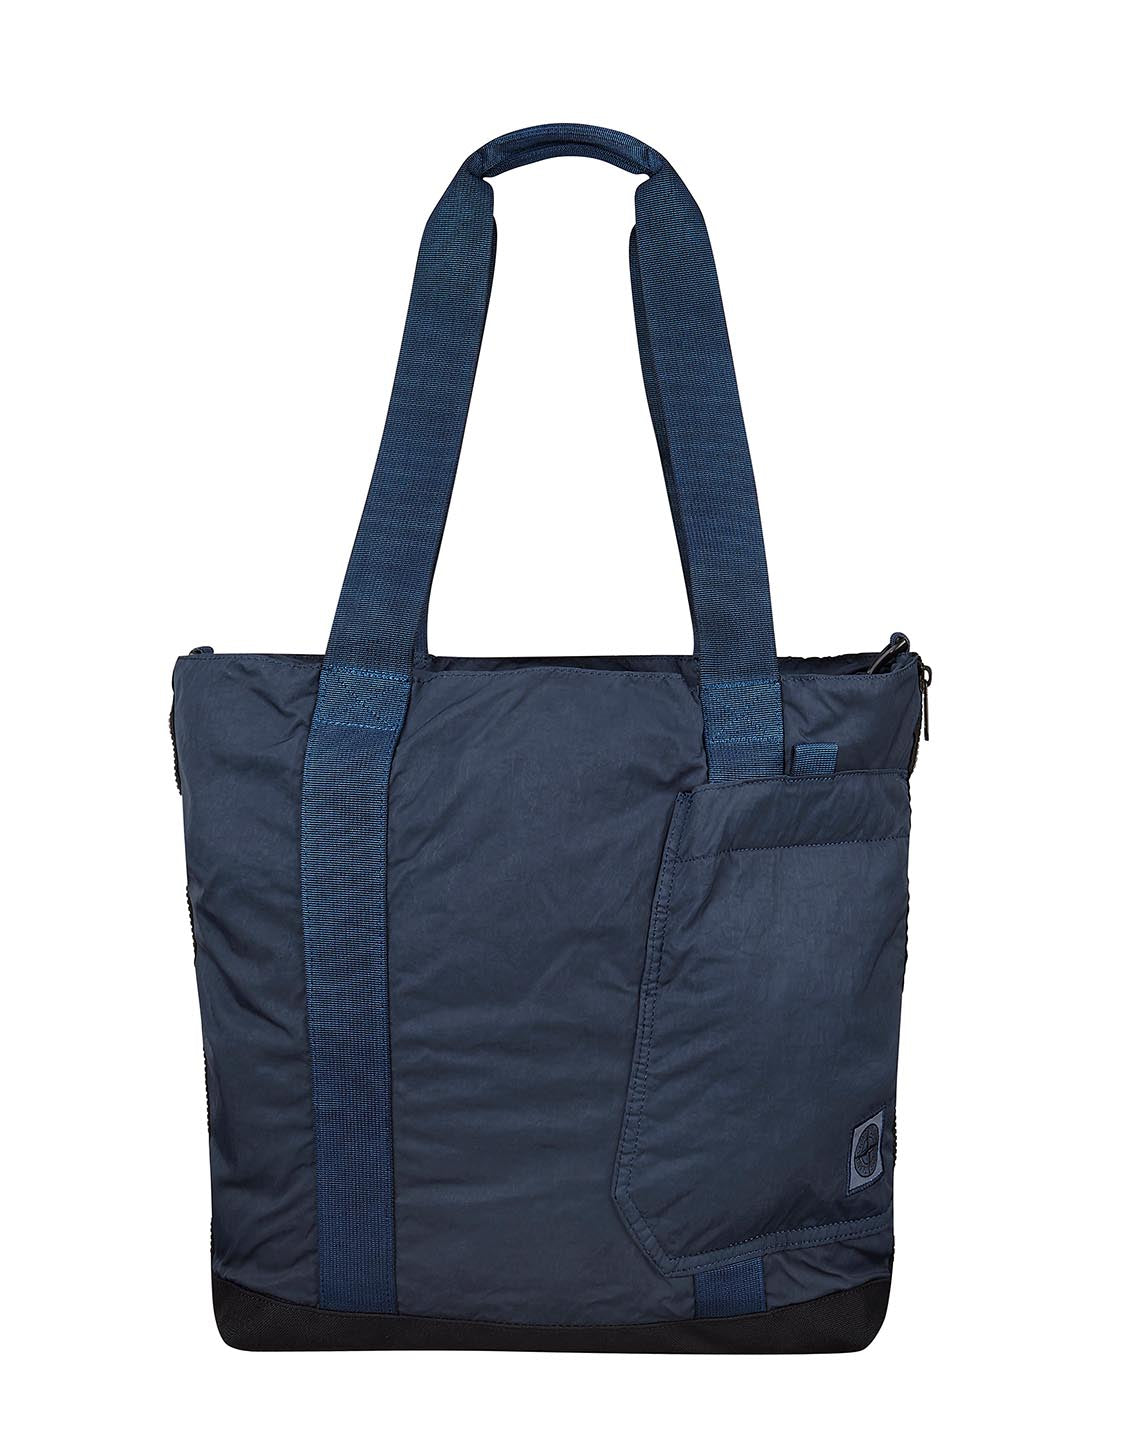 91170 Tote Bag in Dark Blue